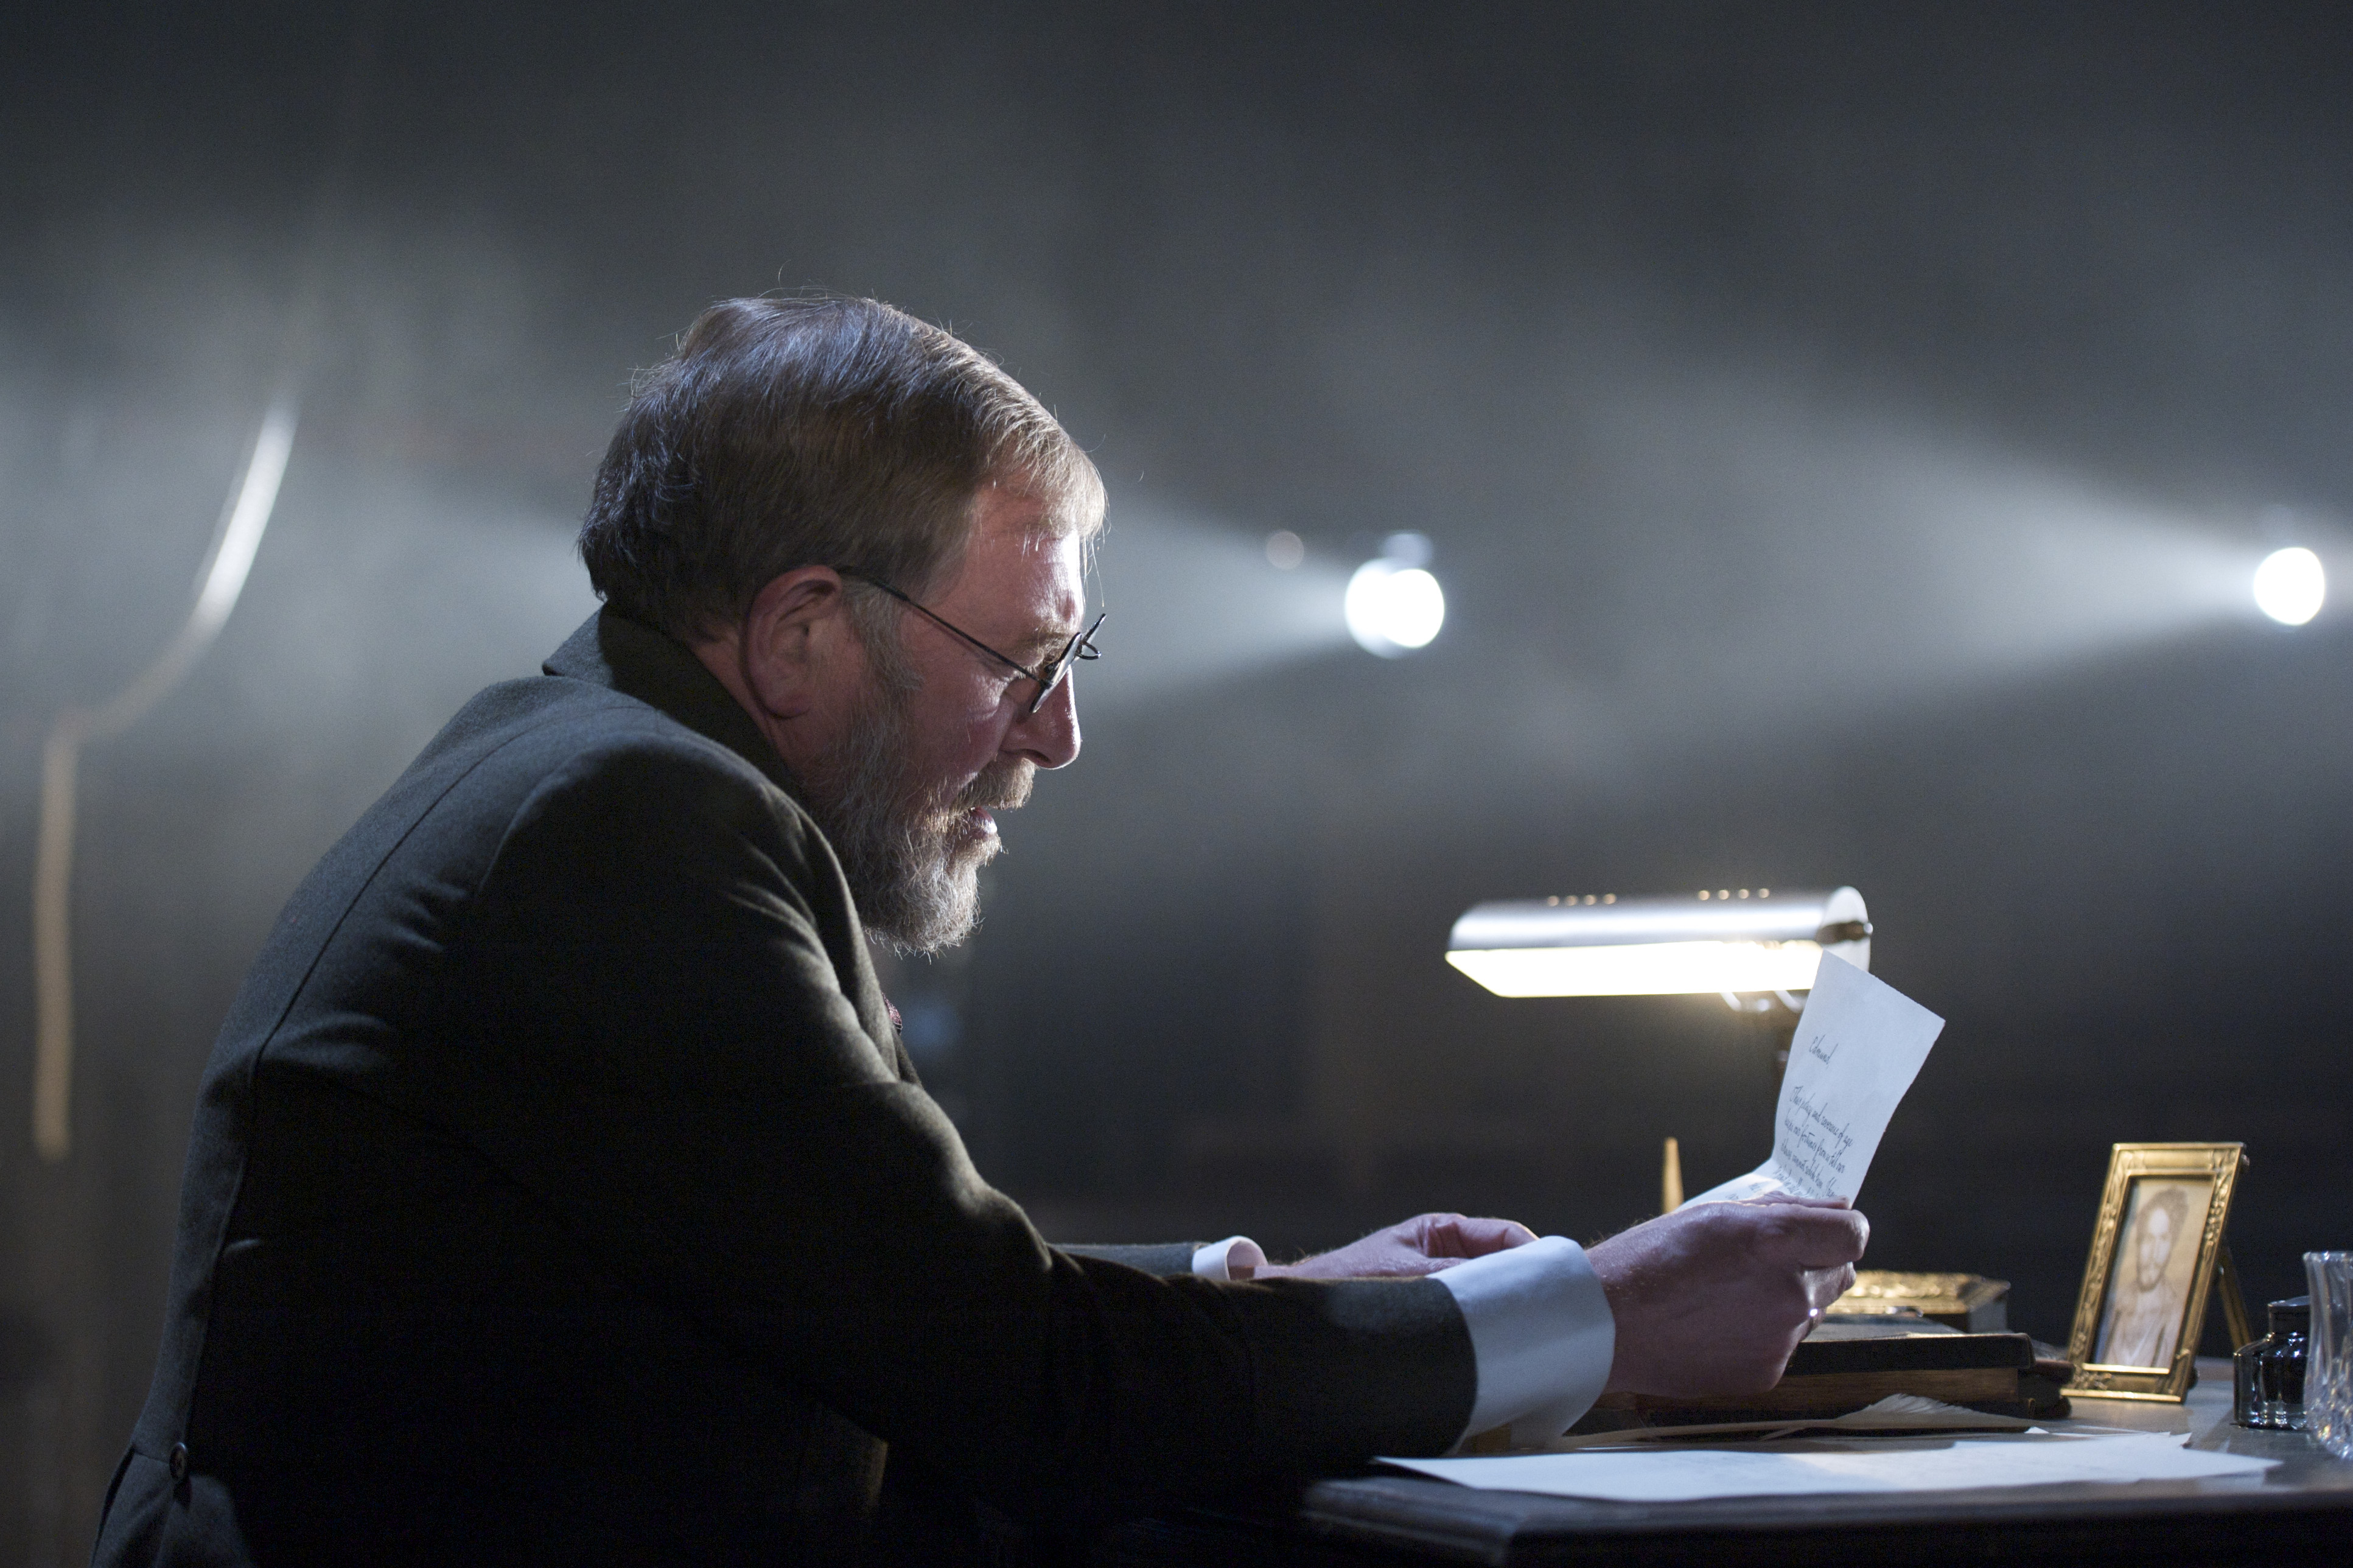 A man reads a letter at his desk.